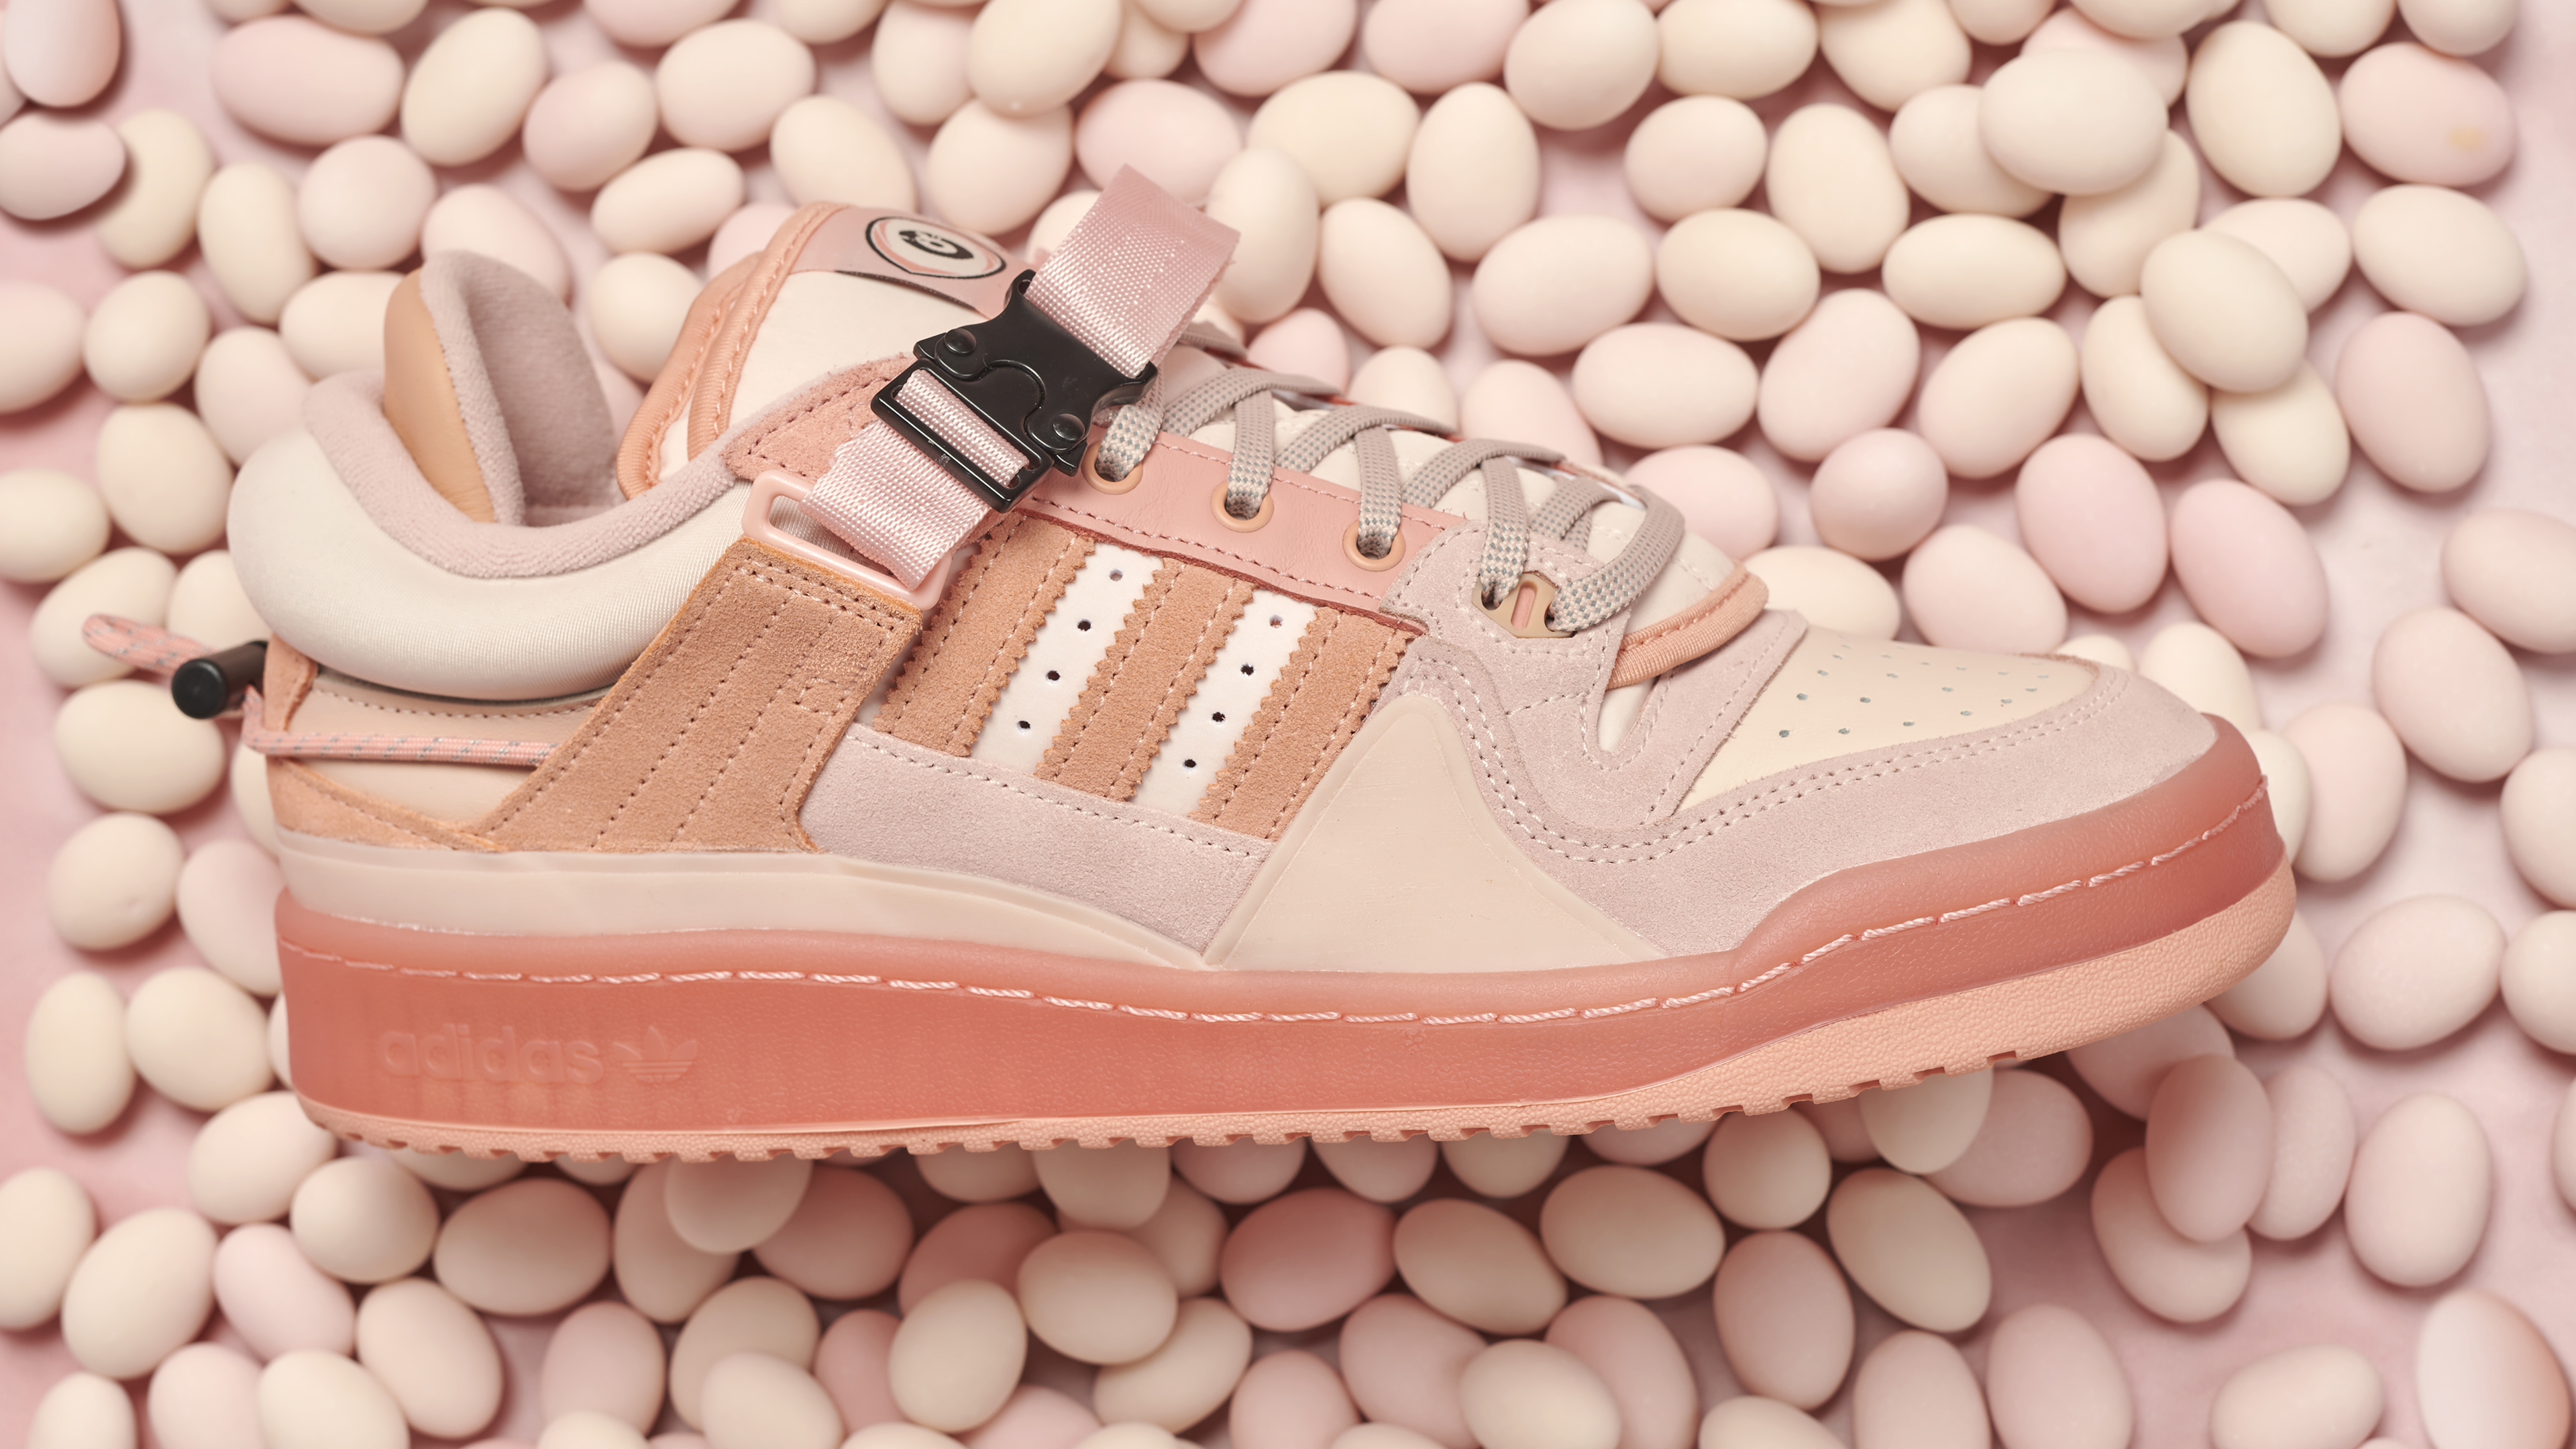 The Pink Bad Bunny x adidas Forum Low Releases on Easter